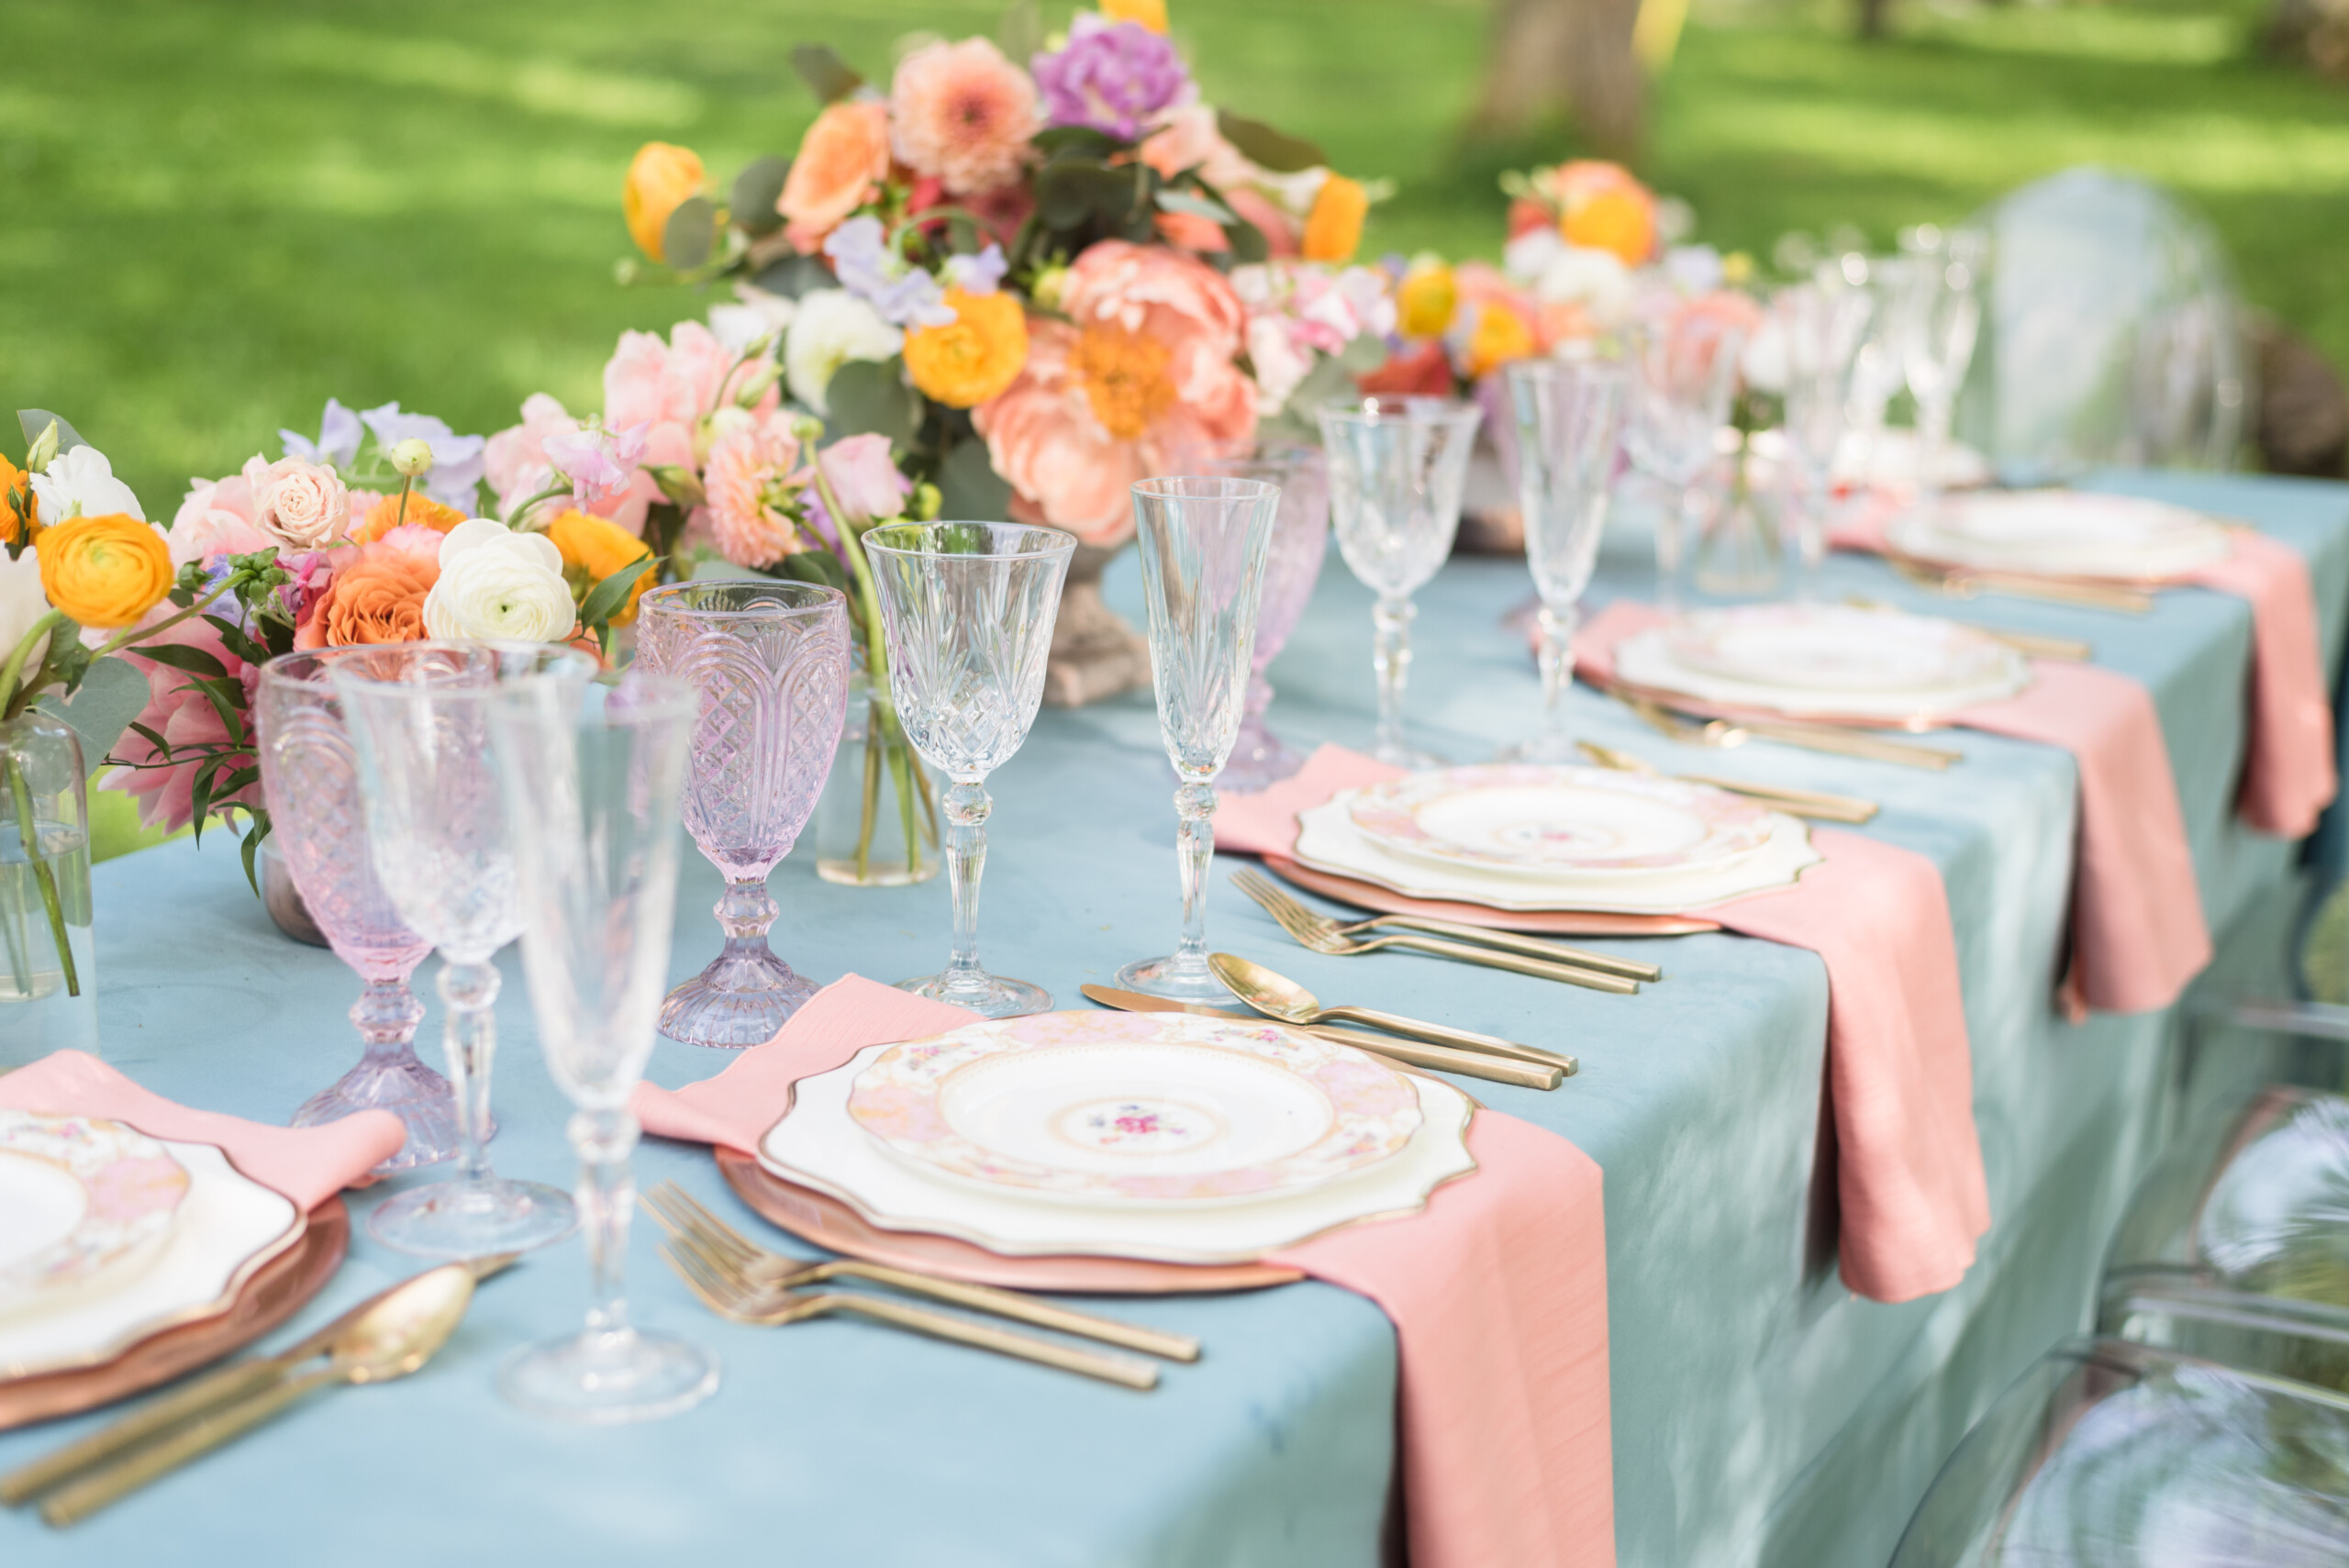 Blue and pink wedding linens